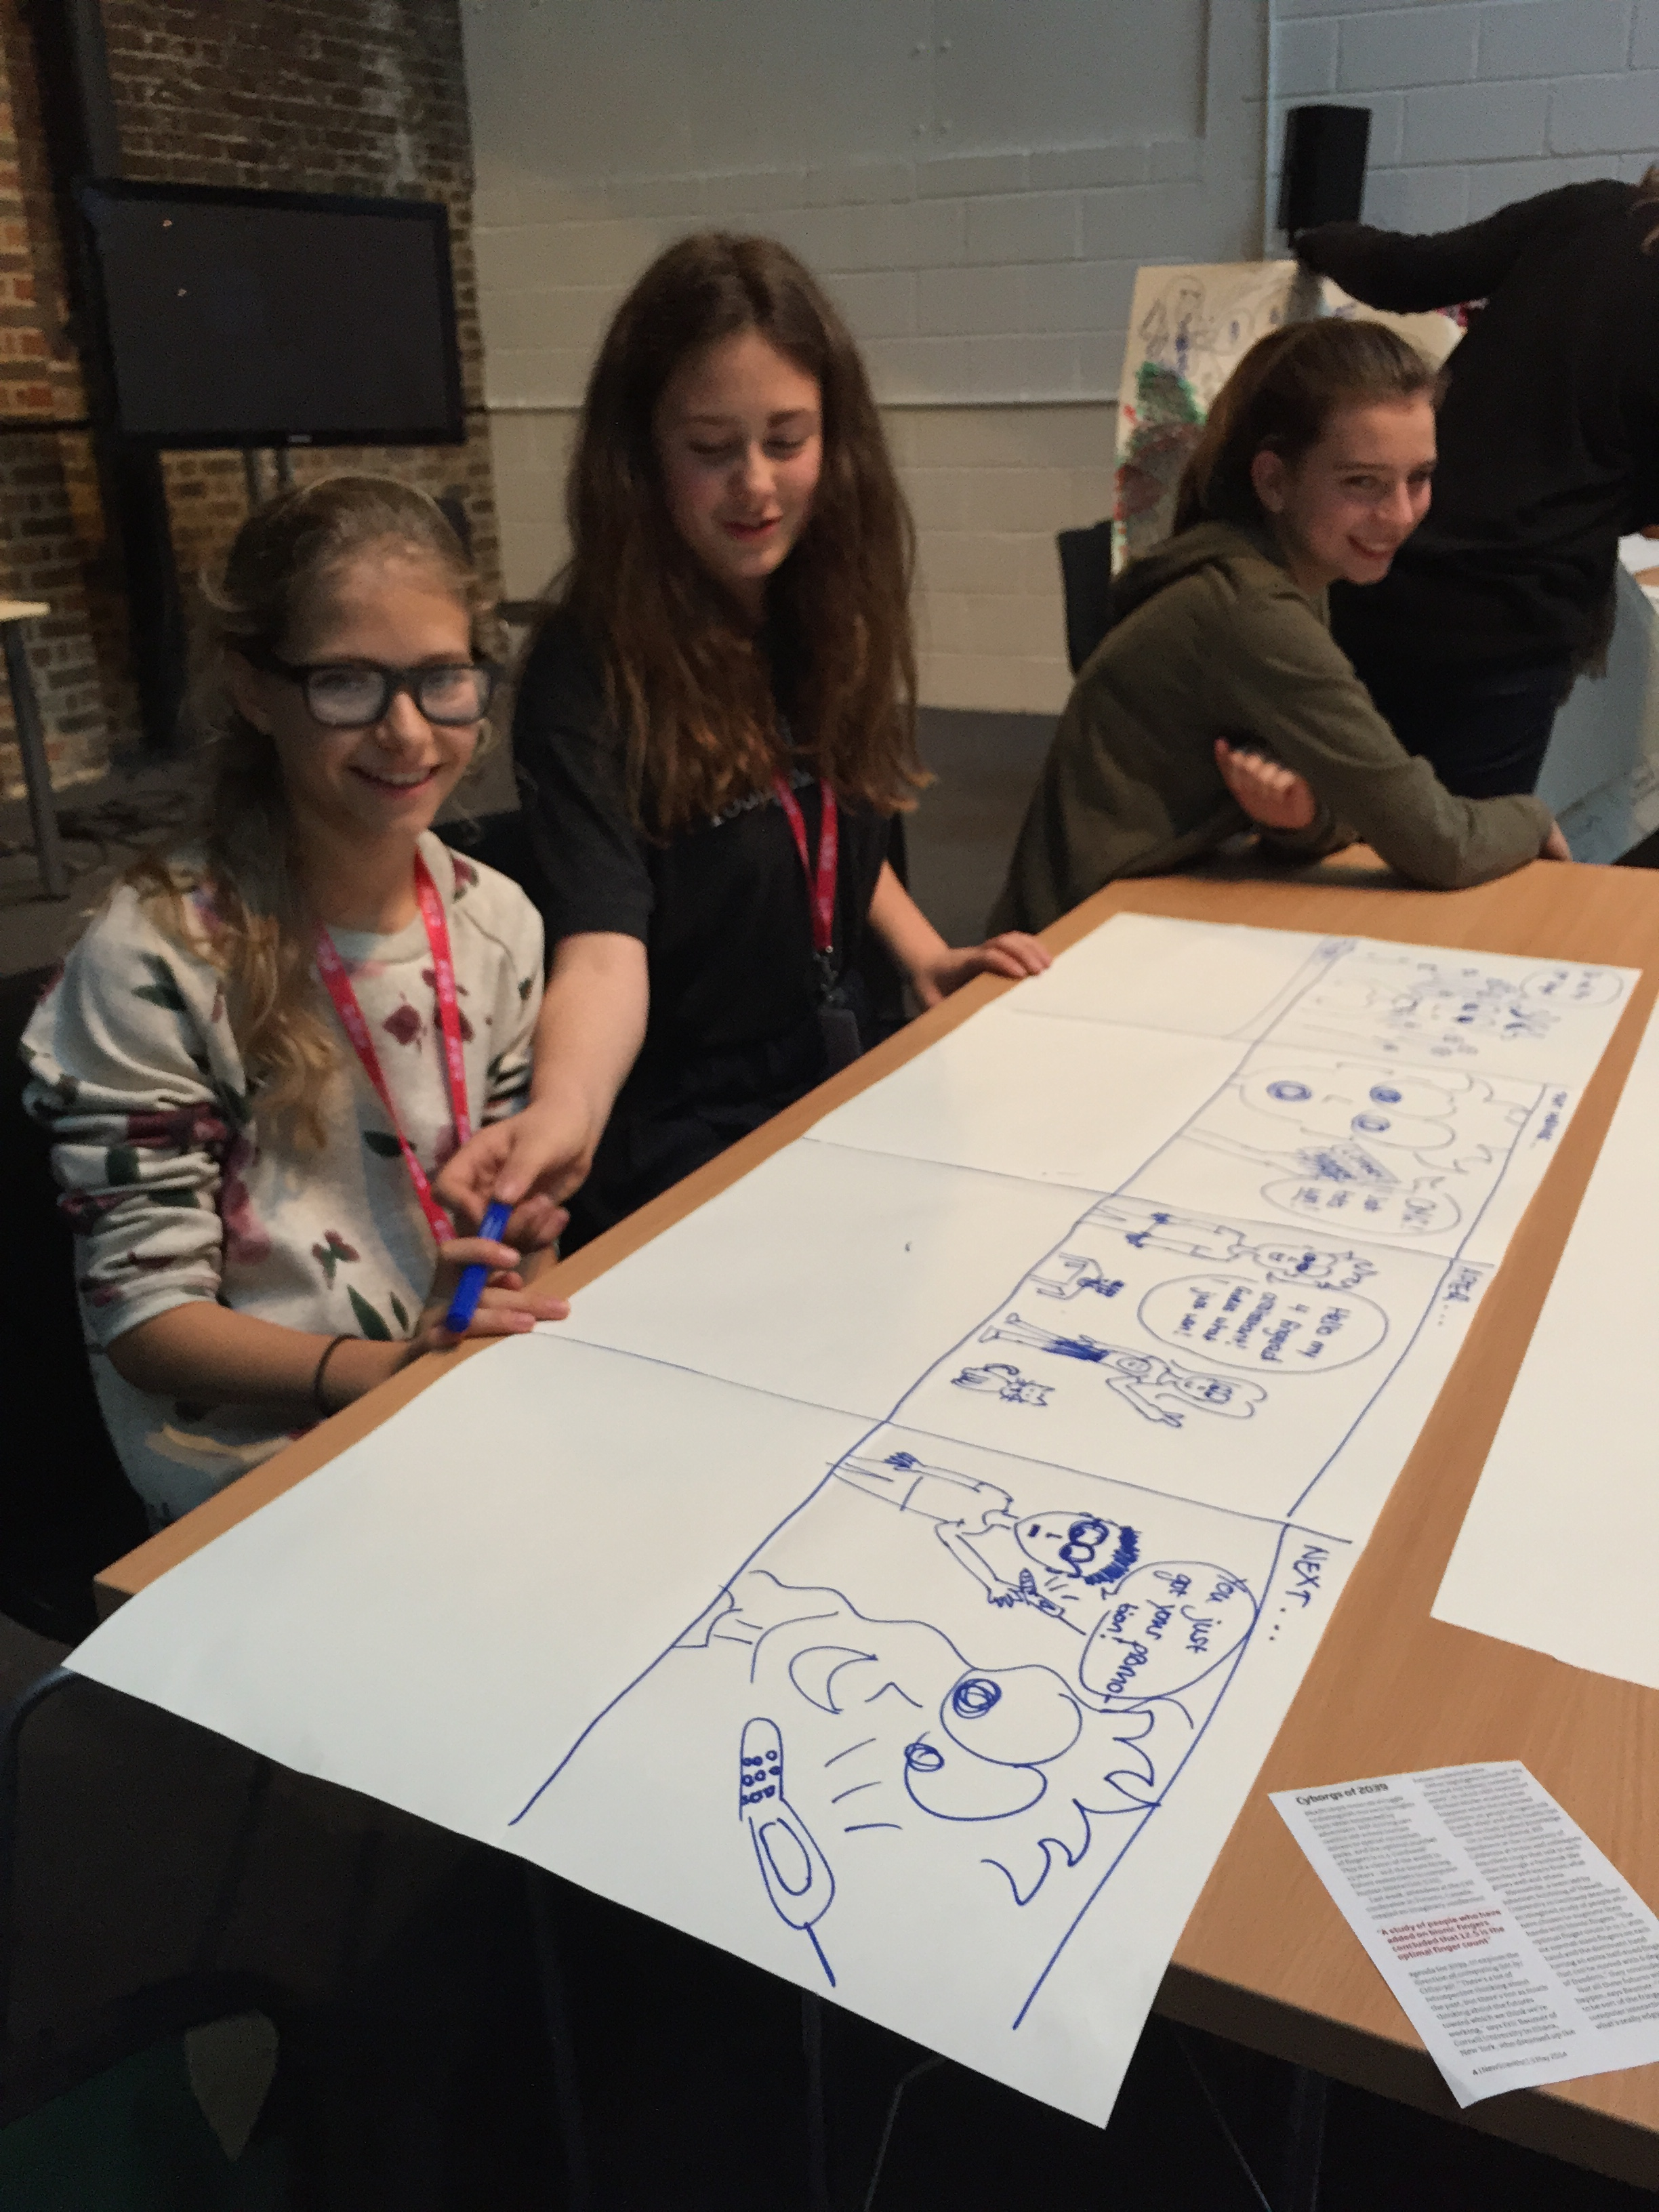 Animation workshop, at Wired's kids event in London